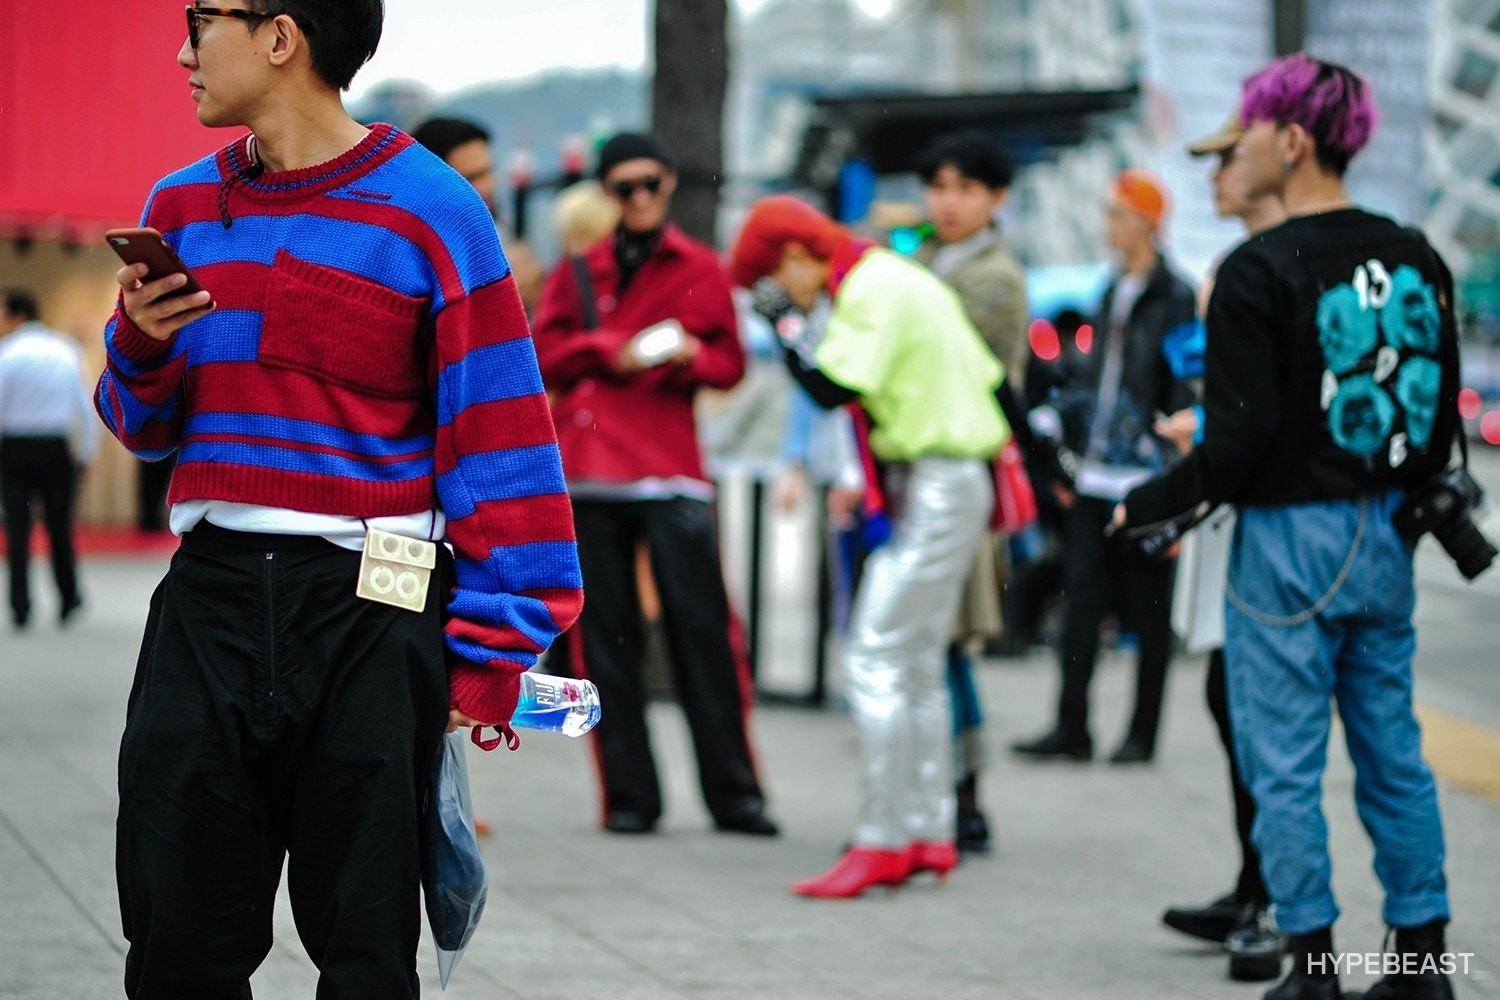 e00b0234b6adc Why Seoul is now Asia s hottest fashion city